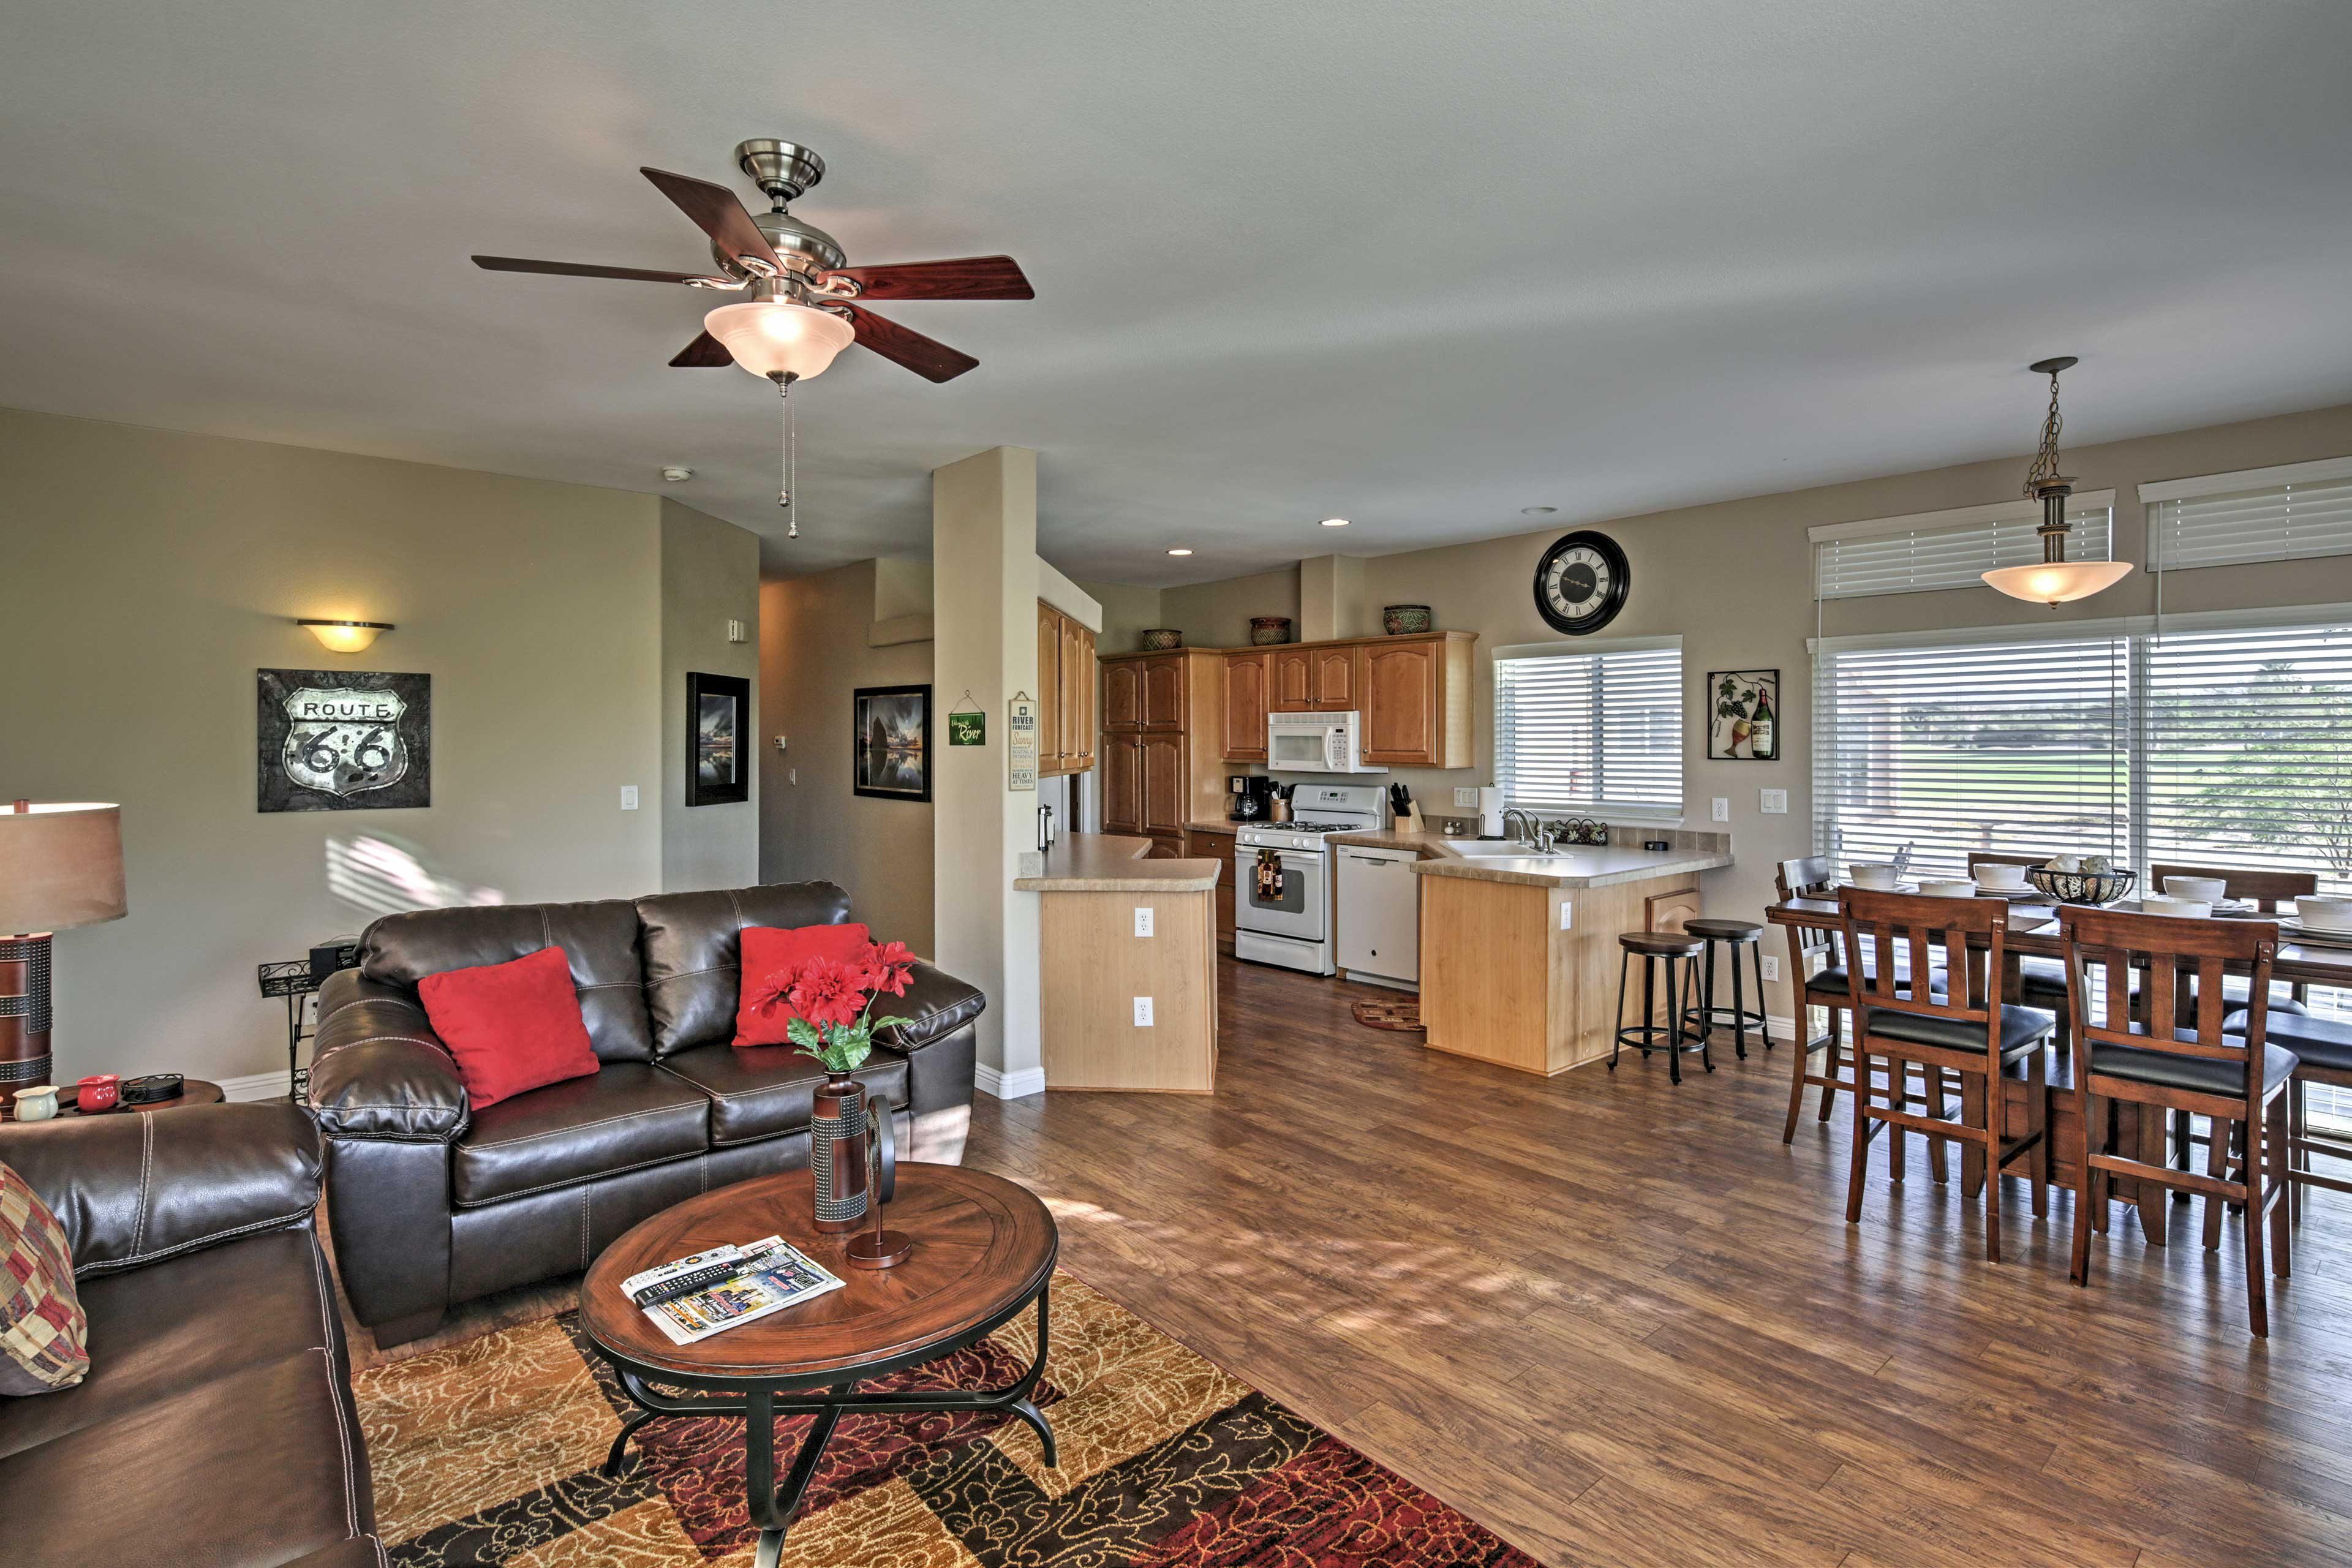 You'll look forward to returning home to the beautifully appointed living space.